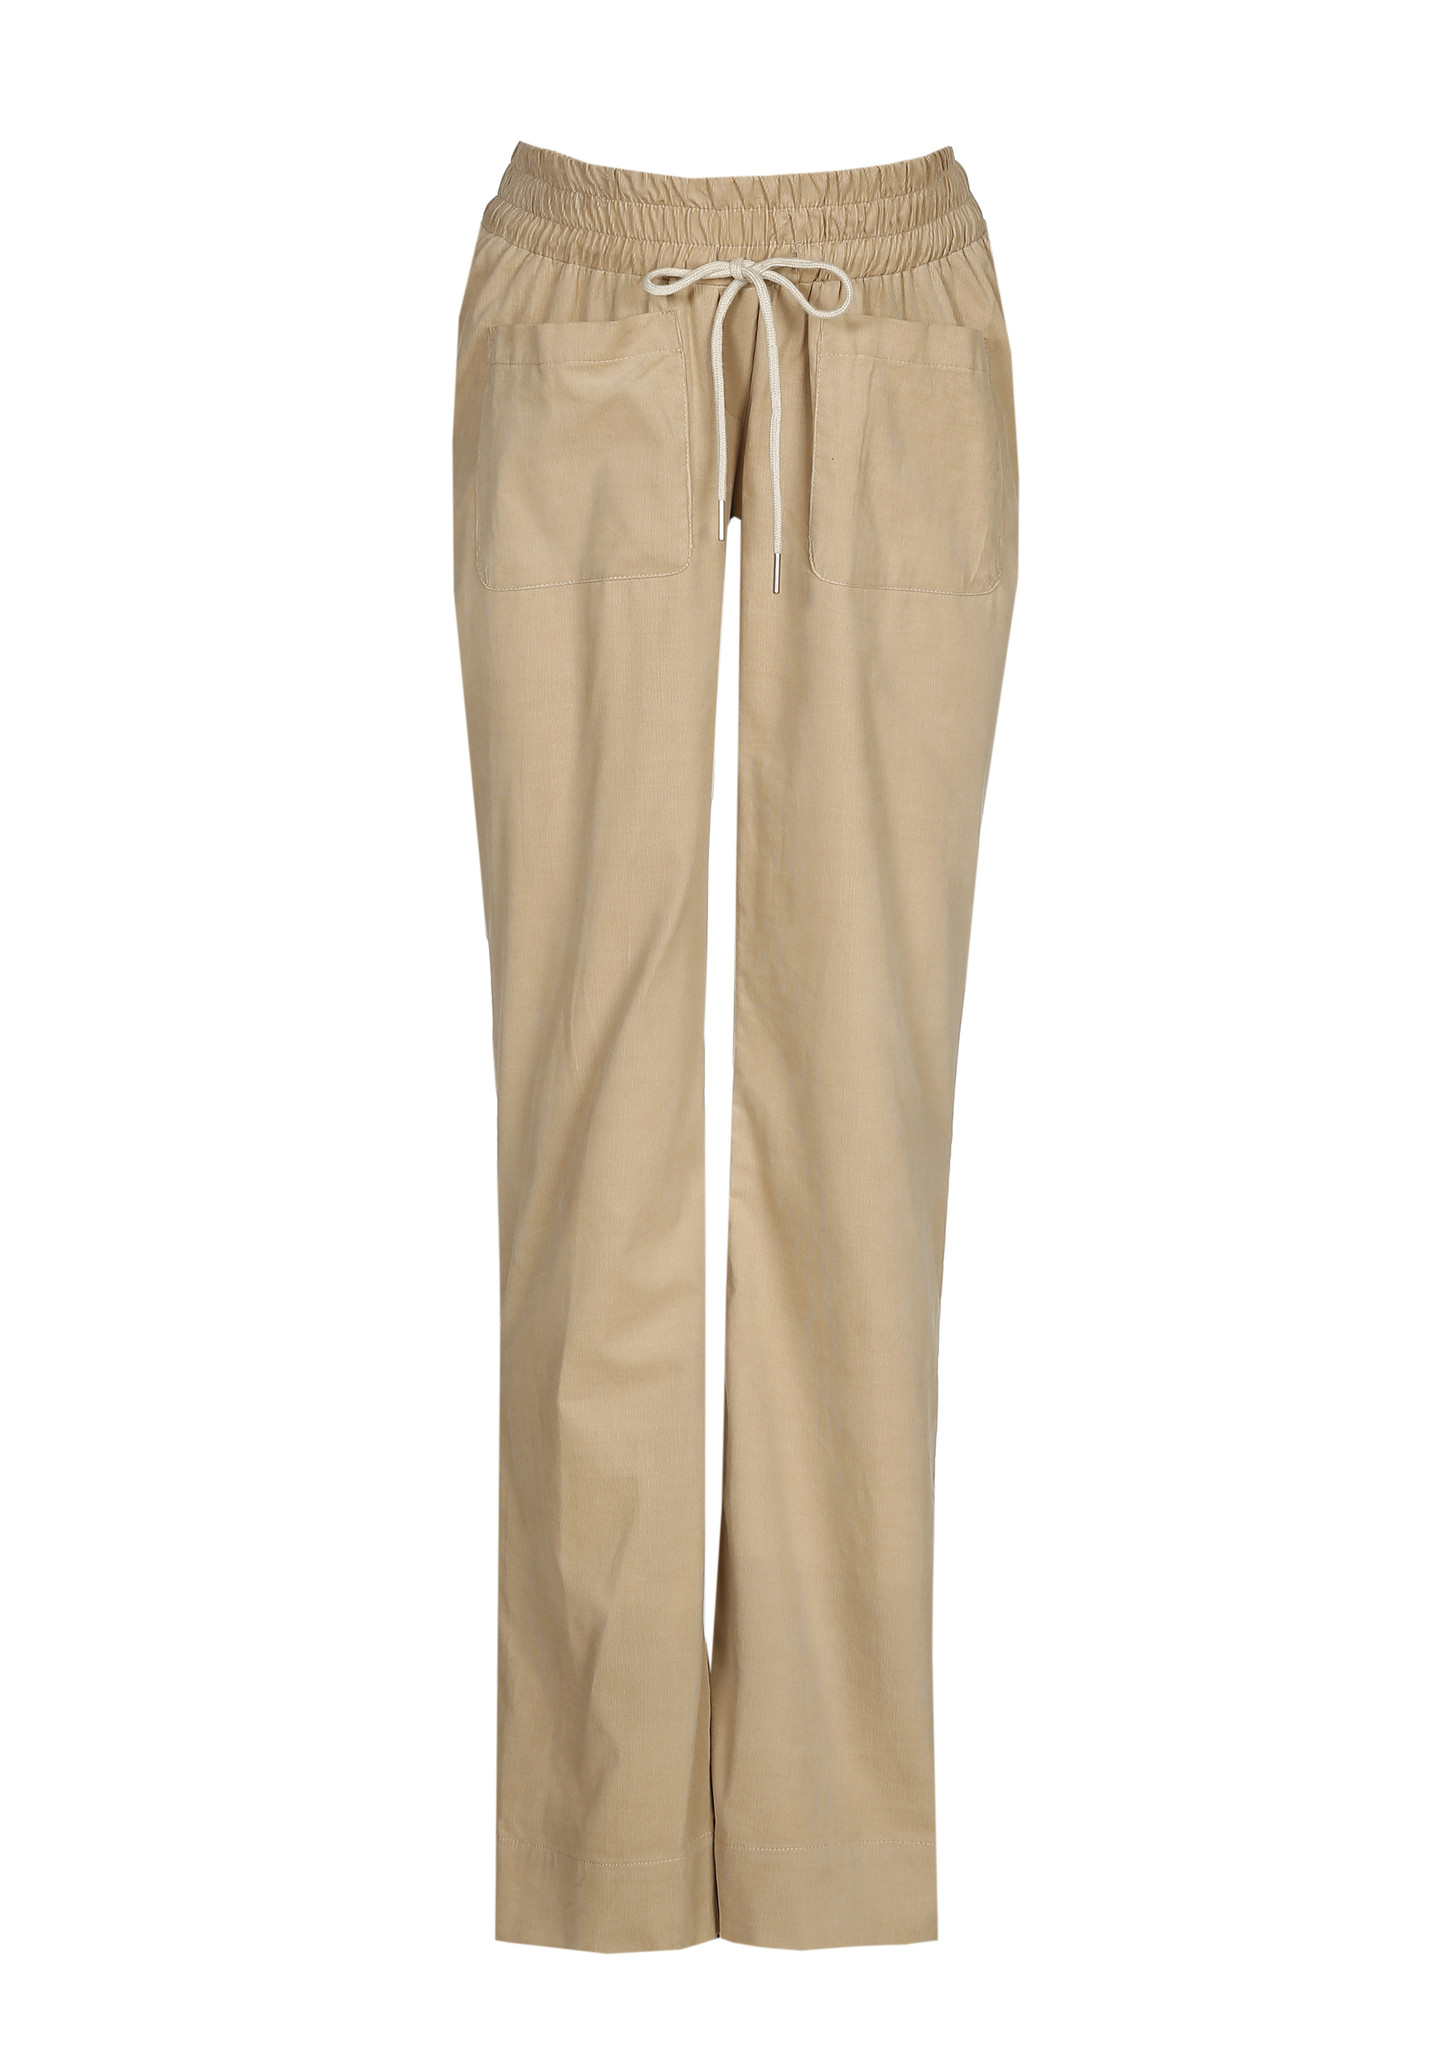 easy pocket trousers - sand babycord-2